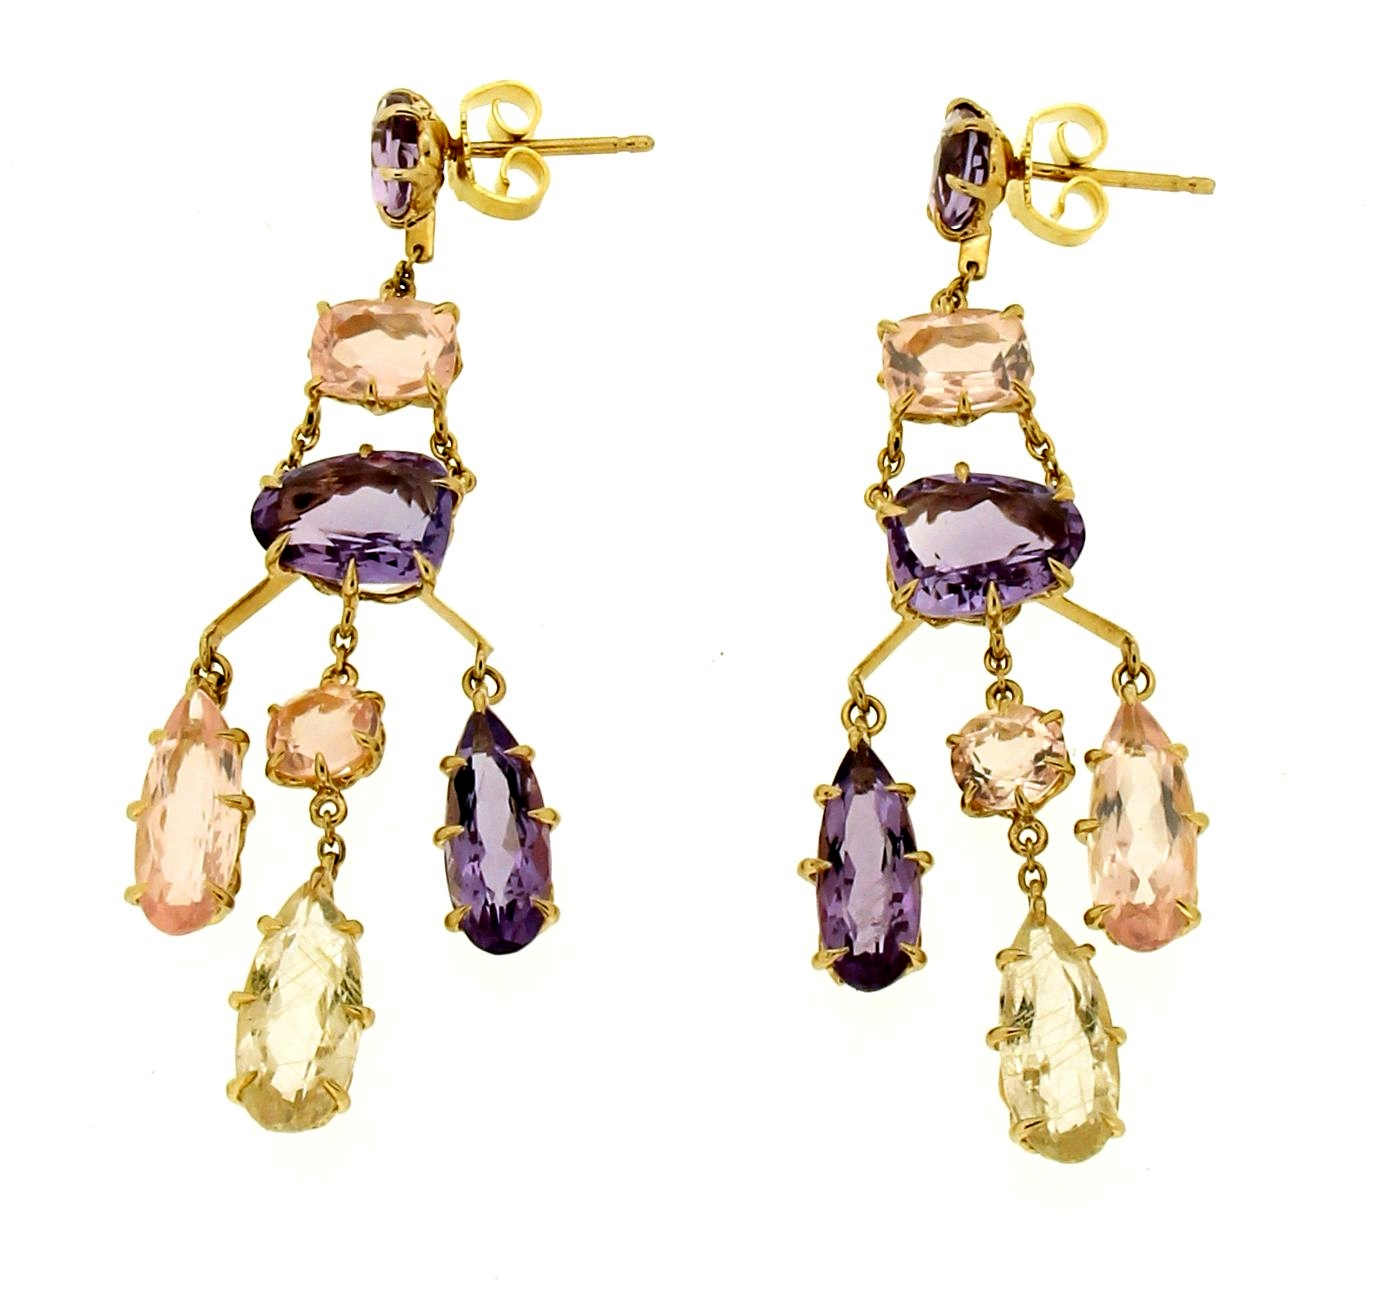 Hand made earrings with quartz